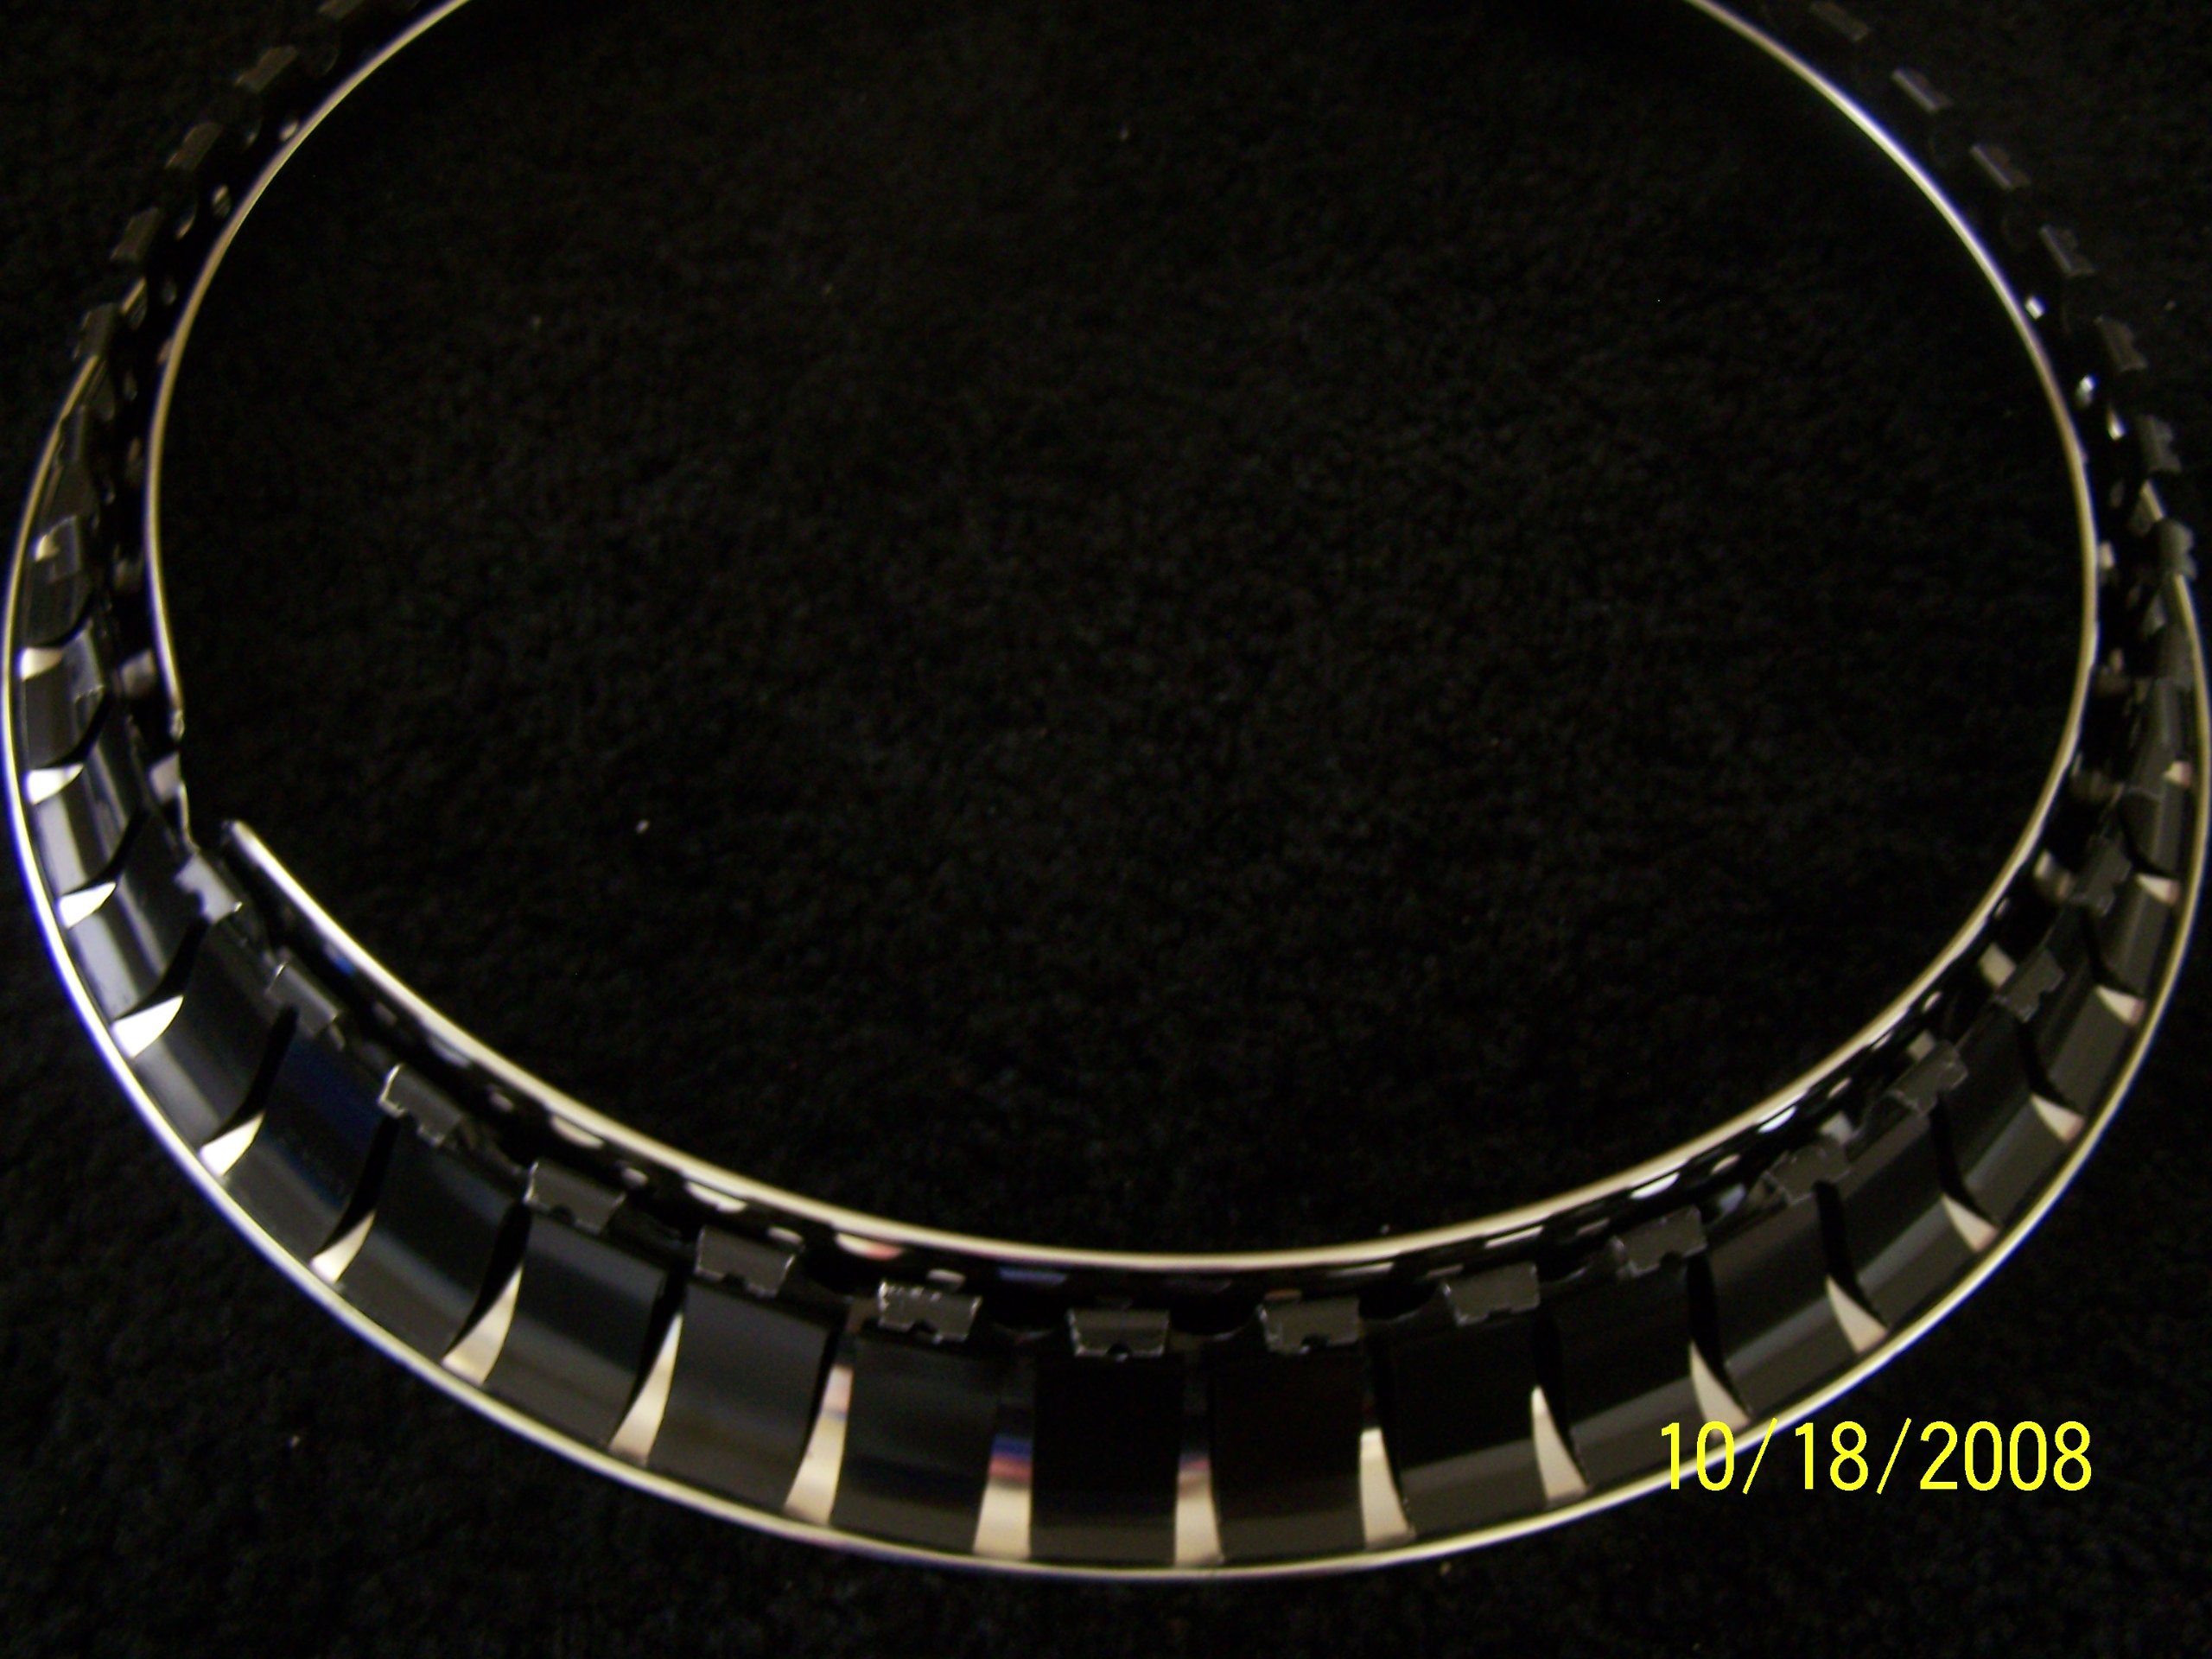 15 Inch Chrome Plated Stainless Steel Universal Trim Rings by Eagle Flight